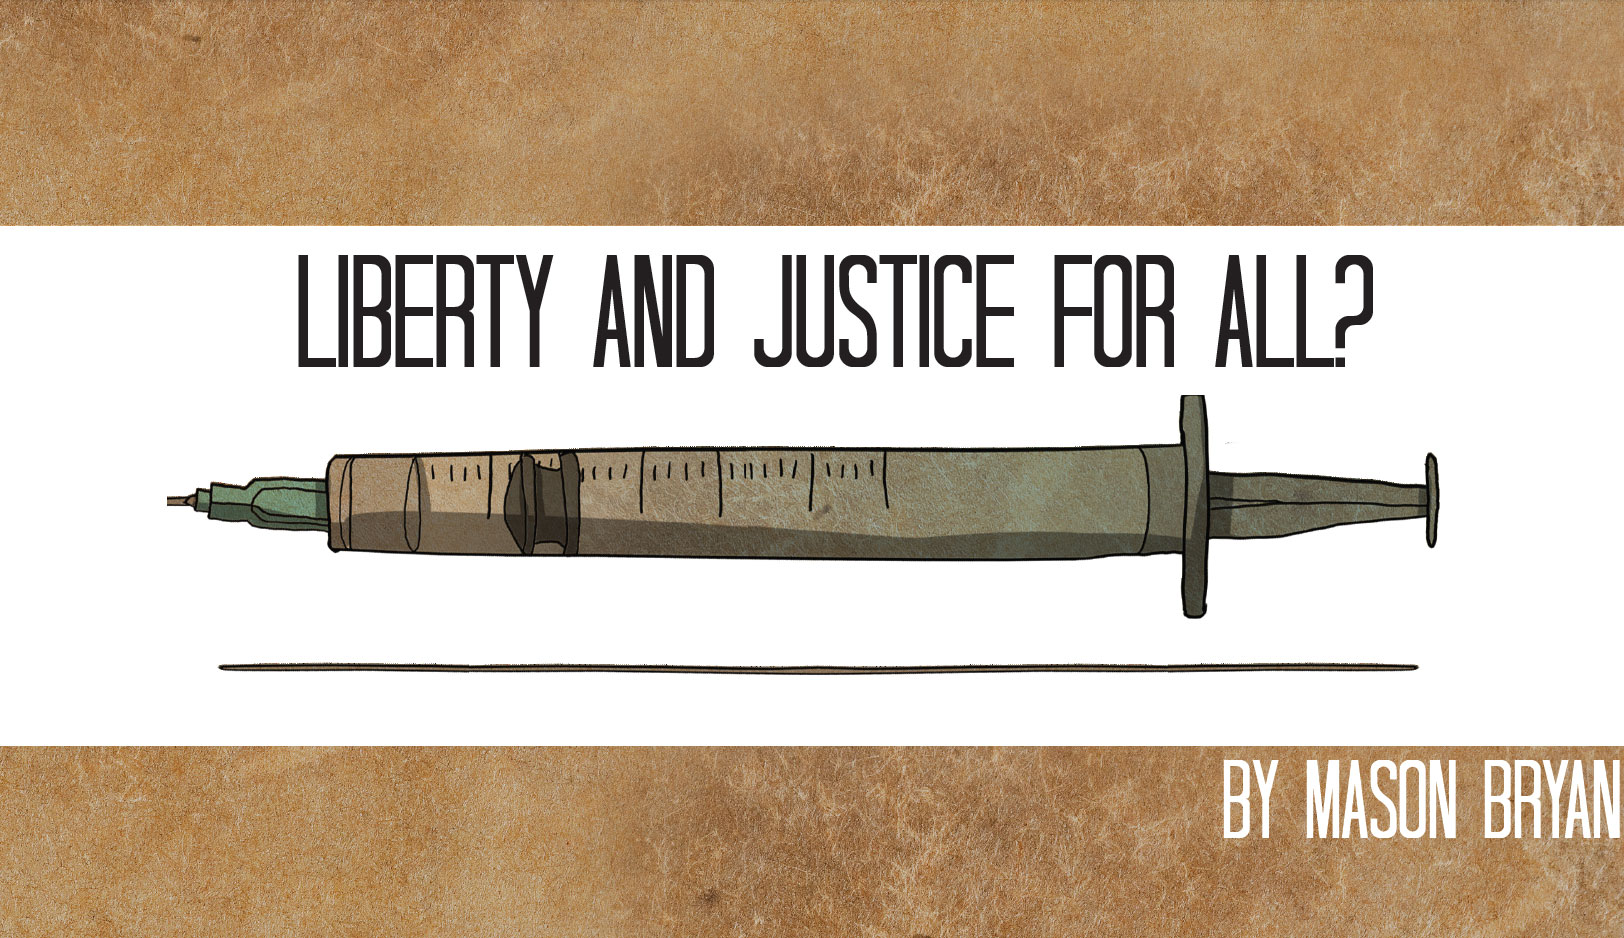 Liberty and Justice for All?